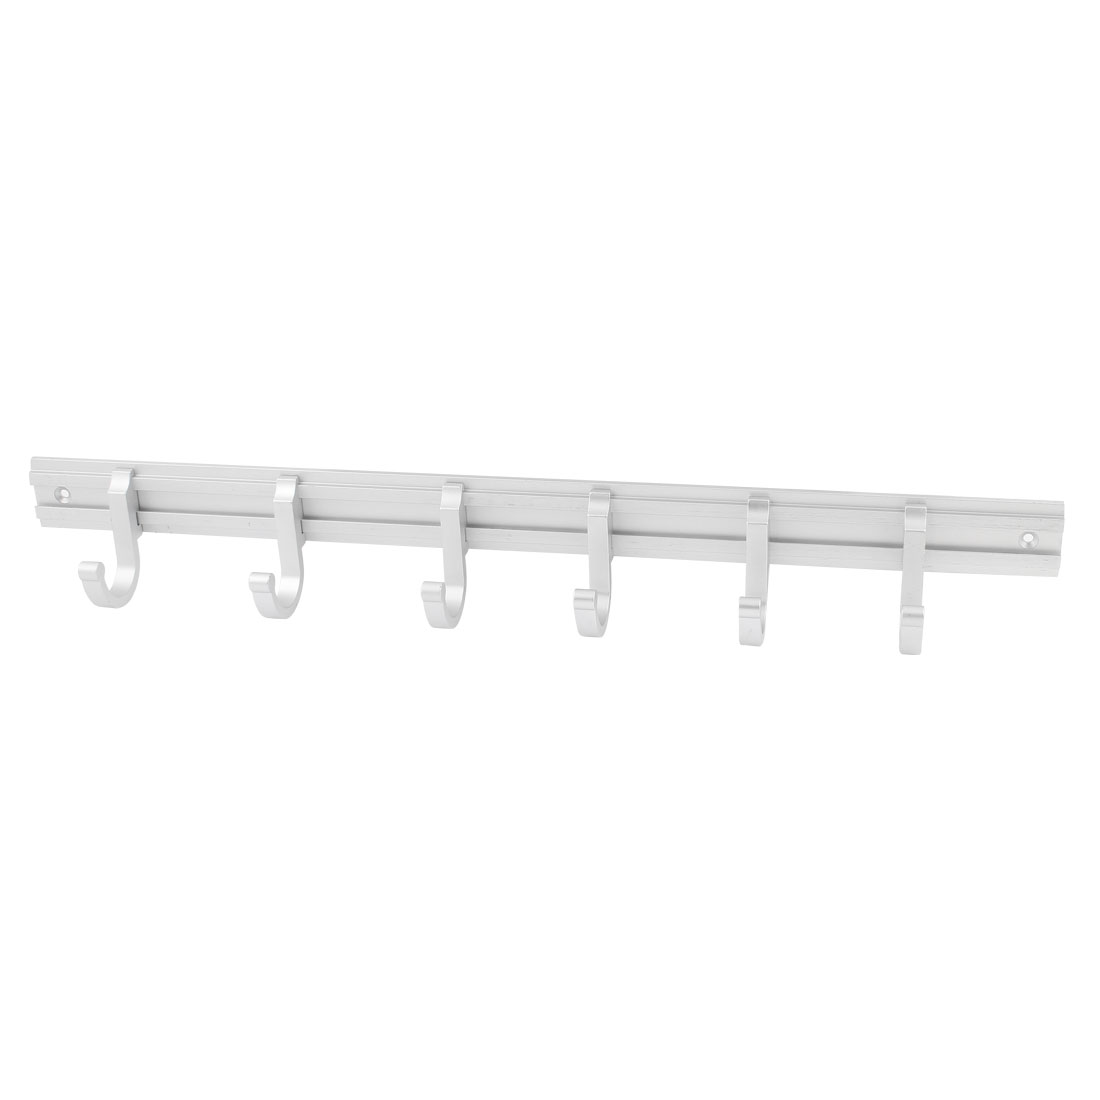 Aluminium Adjustable 6 Hanger Towel Hat Coat Clothes Wall Mount Hook Rack Rail